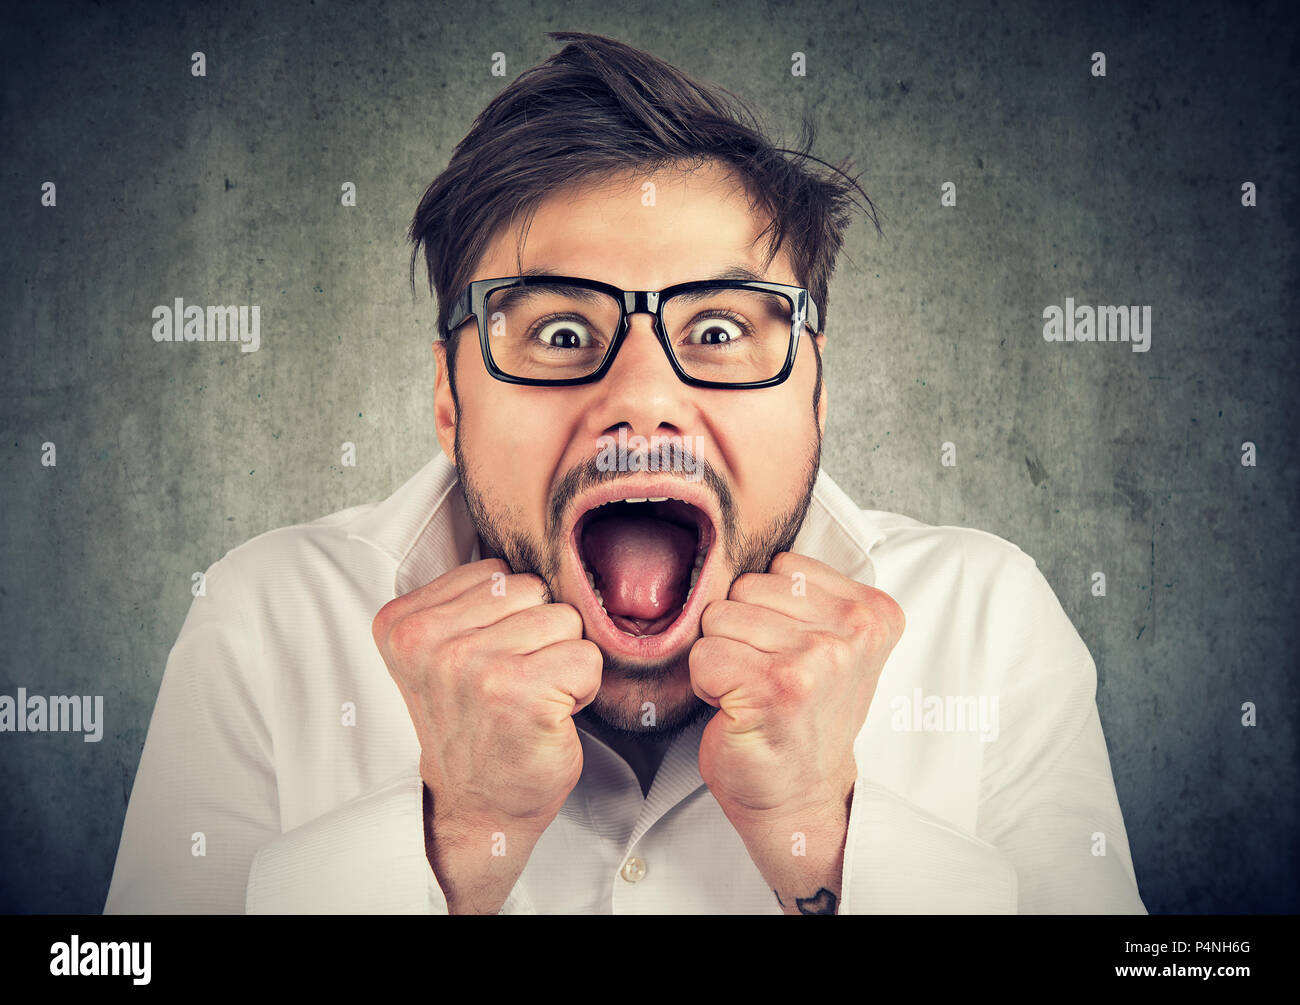 Close-up of young man in glasses with mouth opened thrilled to scream with surprise and looking at camera on gray background - Stock Image